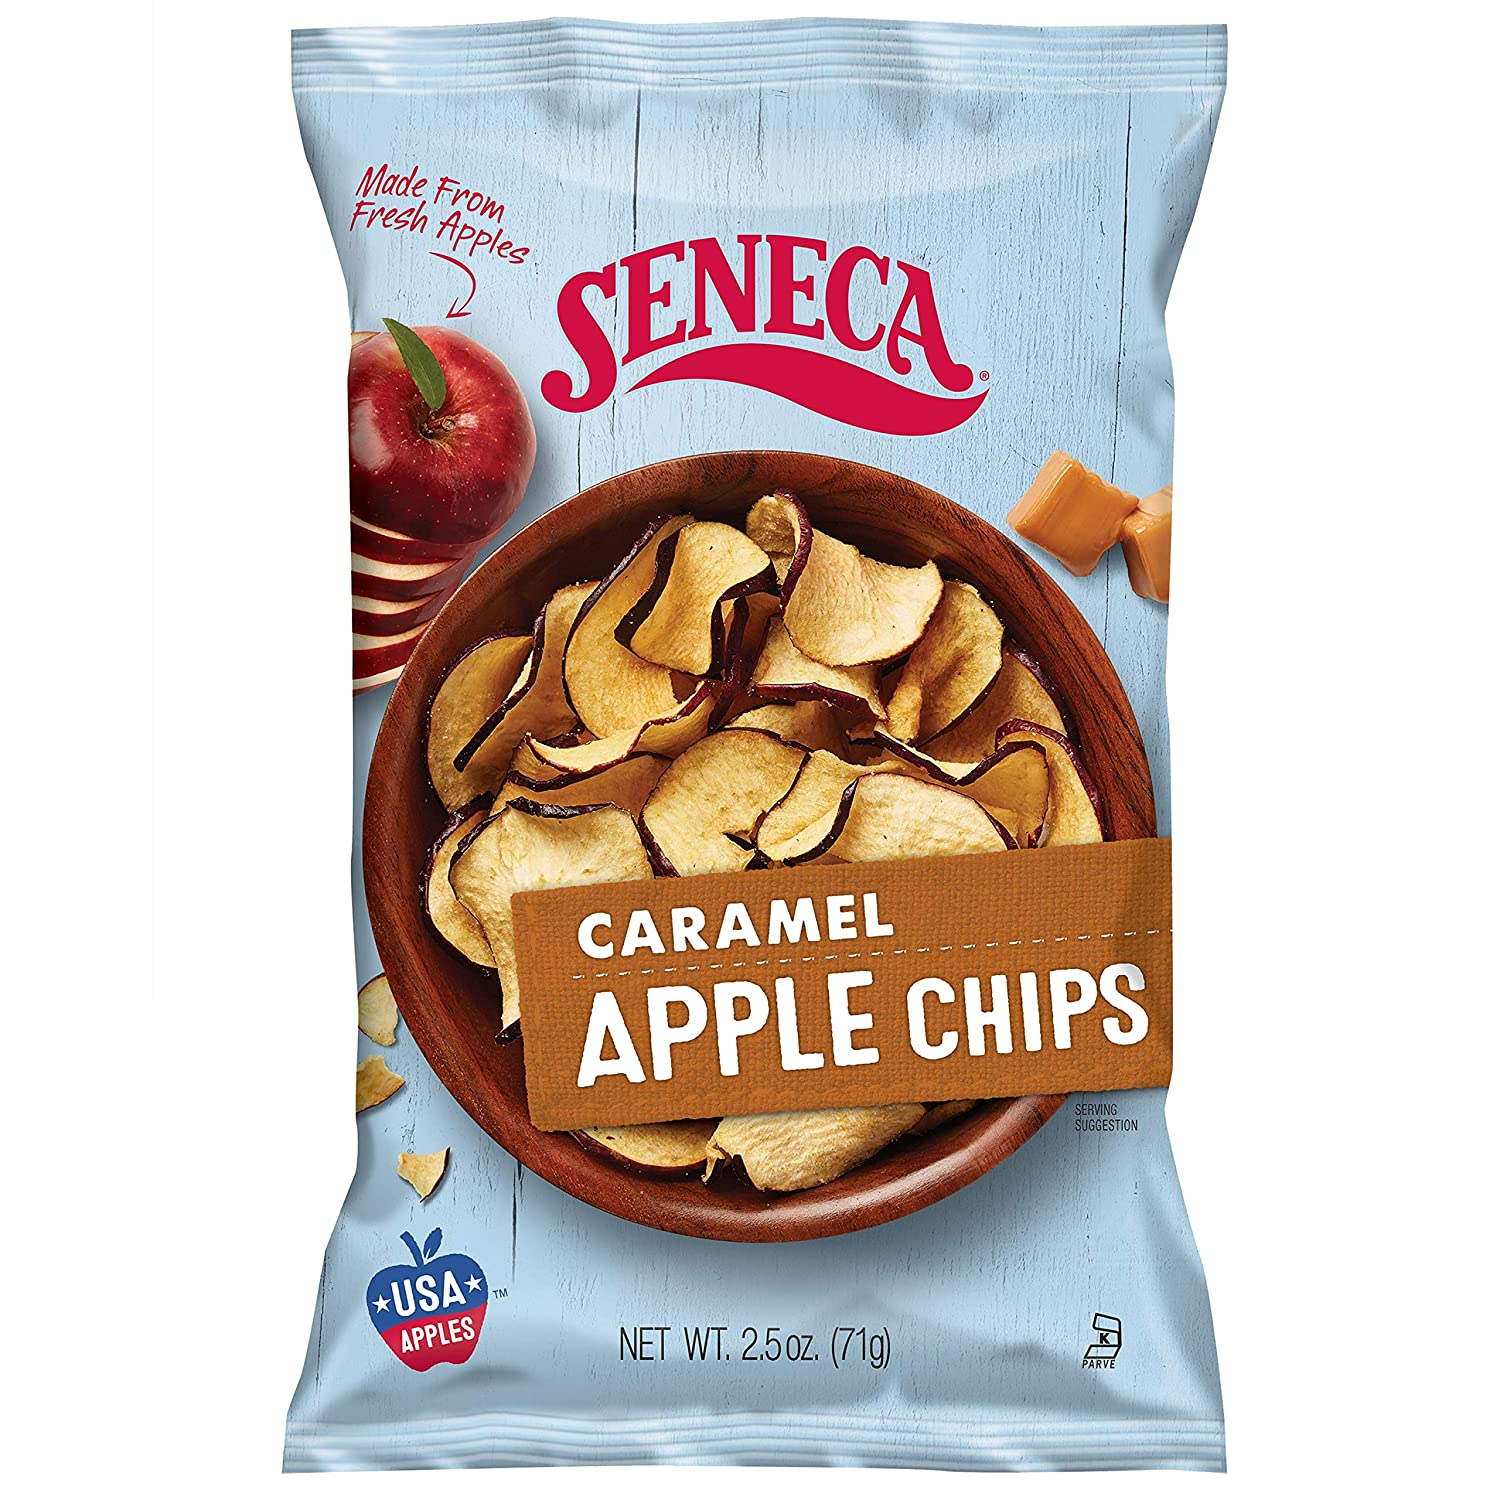 Seneca Caramel Apple Chips   Made from Fresh Apples   100% Red Delicious Apples   Yakima Valley Orchards   Crisped Apple Perfection   Foil-Lined Freshness Bag   2.5 ounce (Pack of 12)